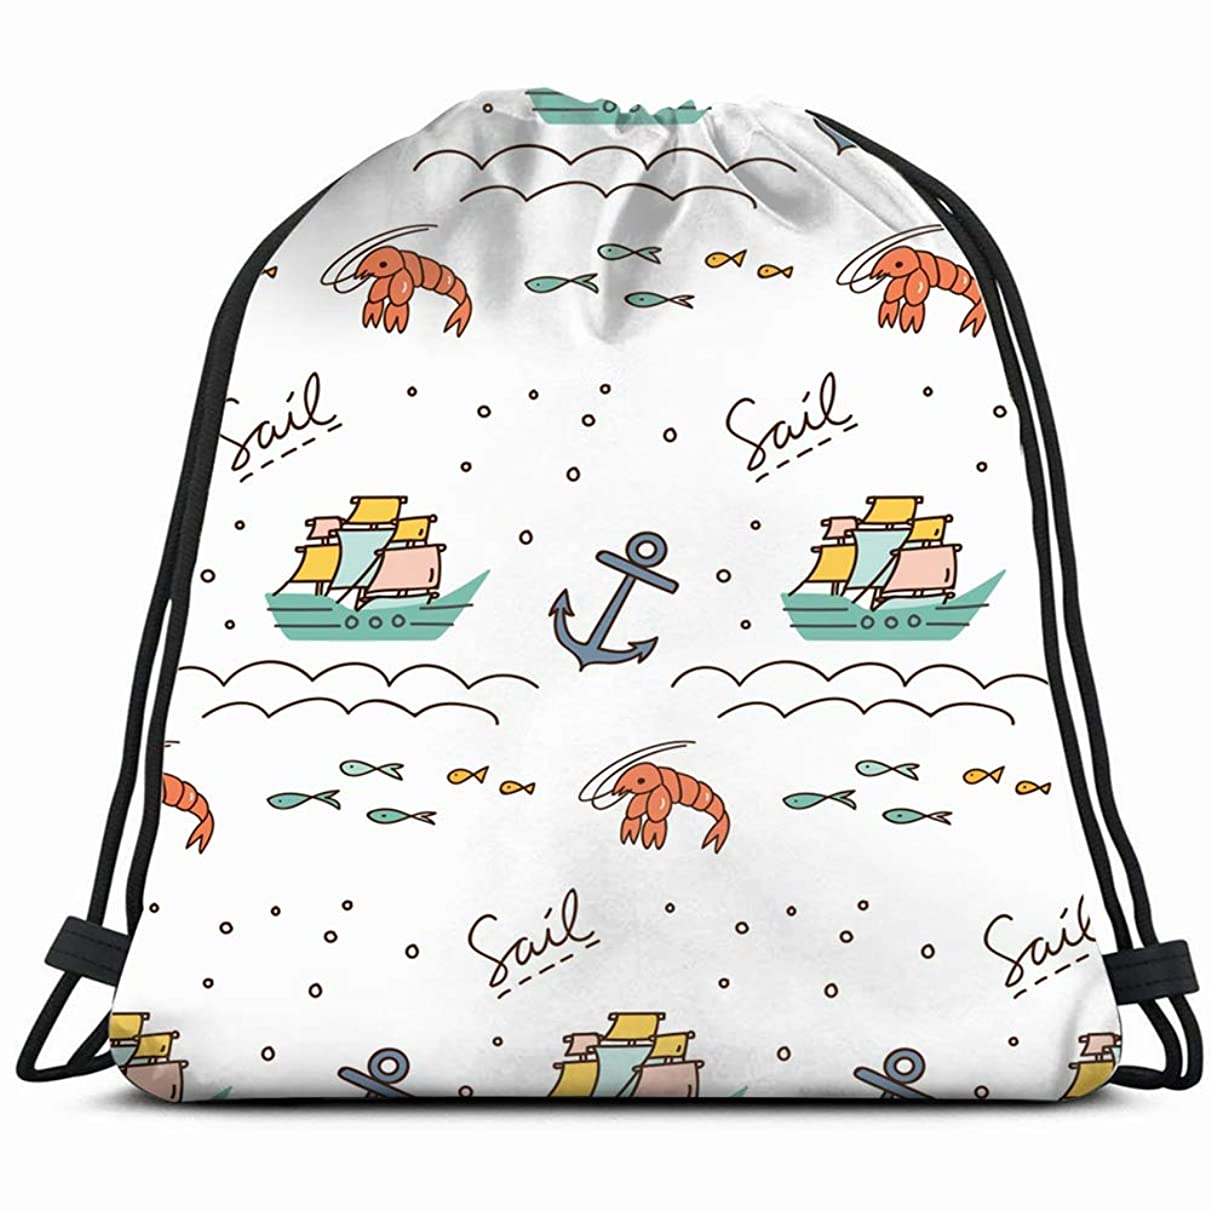 print pattern sailboat anchor shrimp backgrounds textures abstract Drawstring Backpack Gym Spacious Pull String Backpack Multifunctional storage bag 14.2 x 16.9 inch